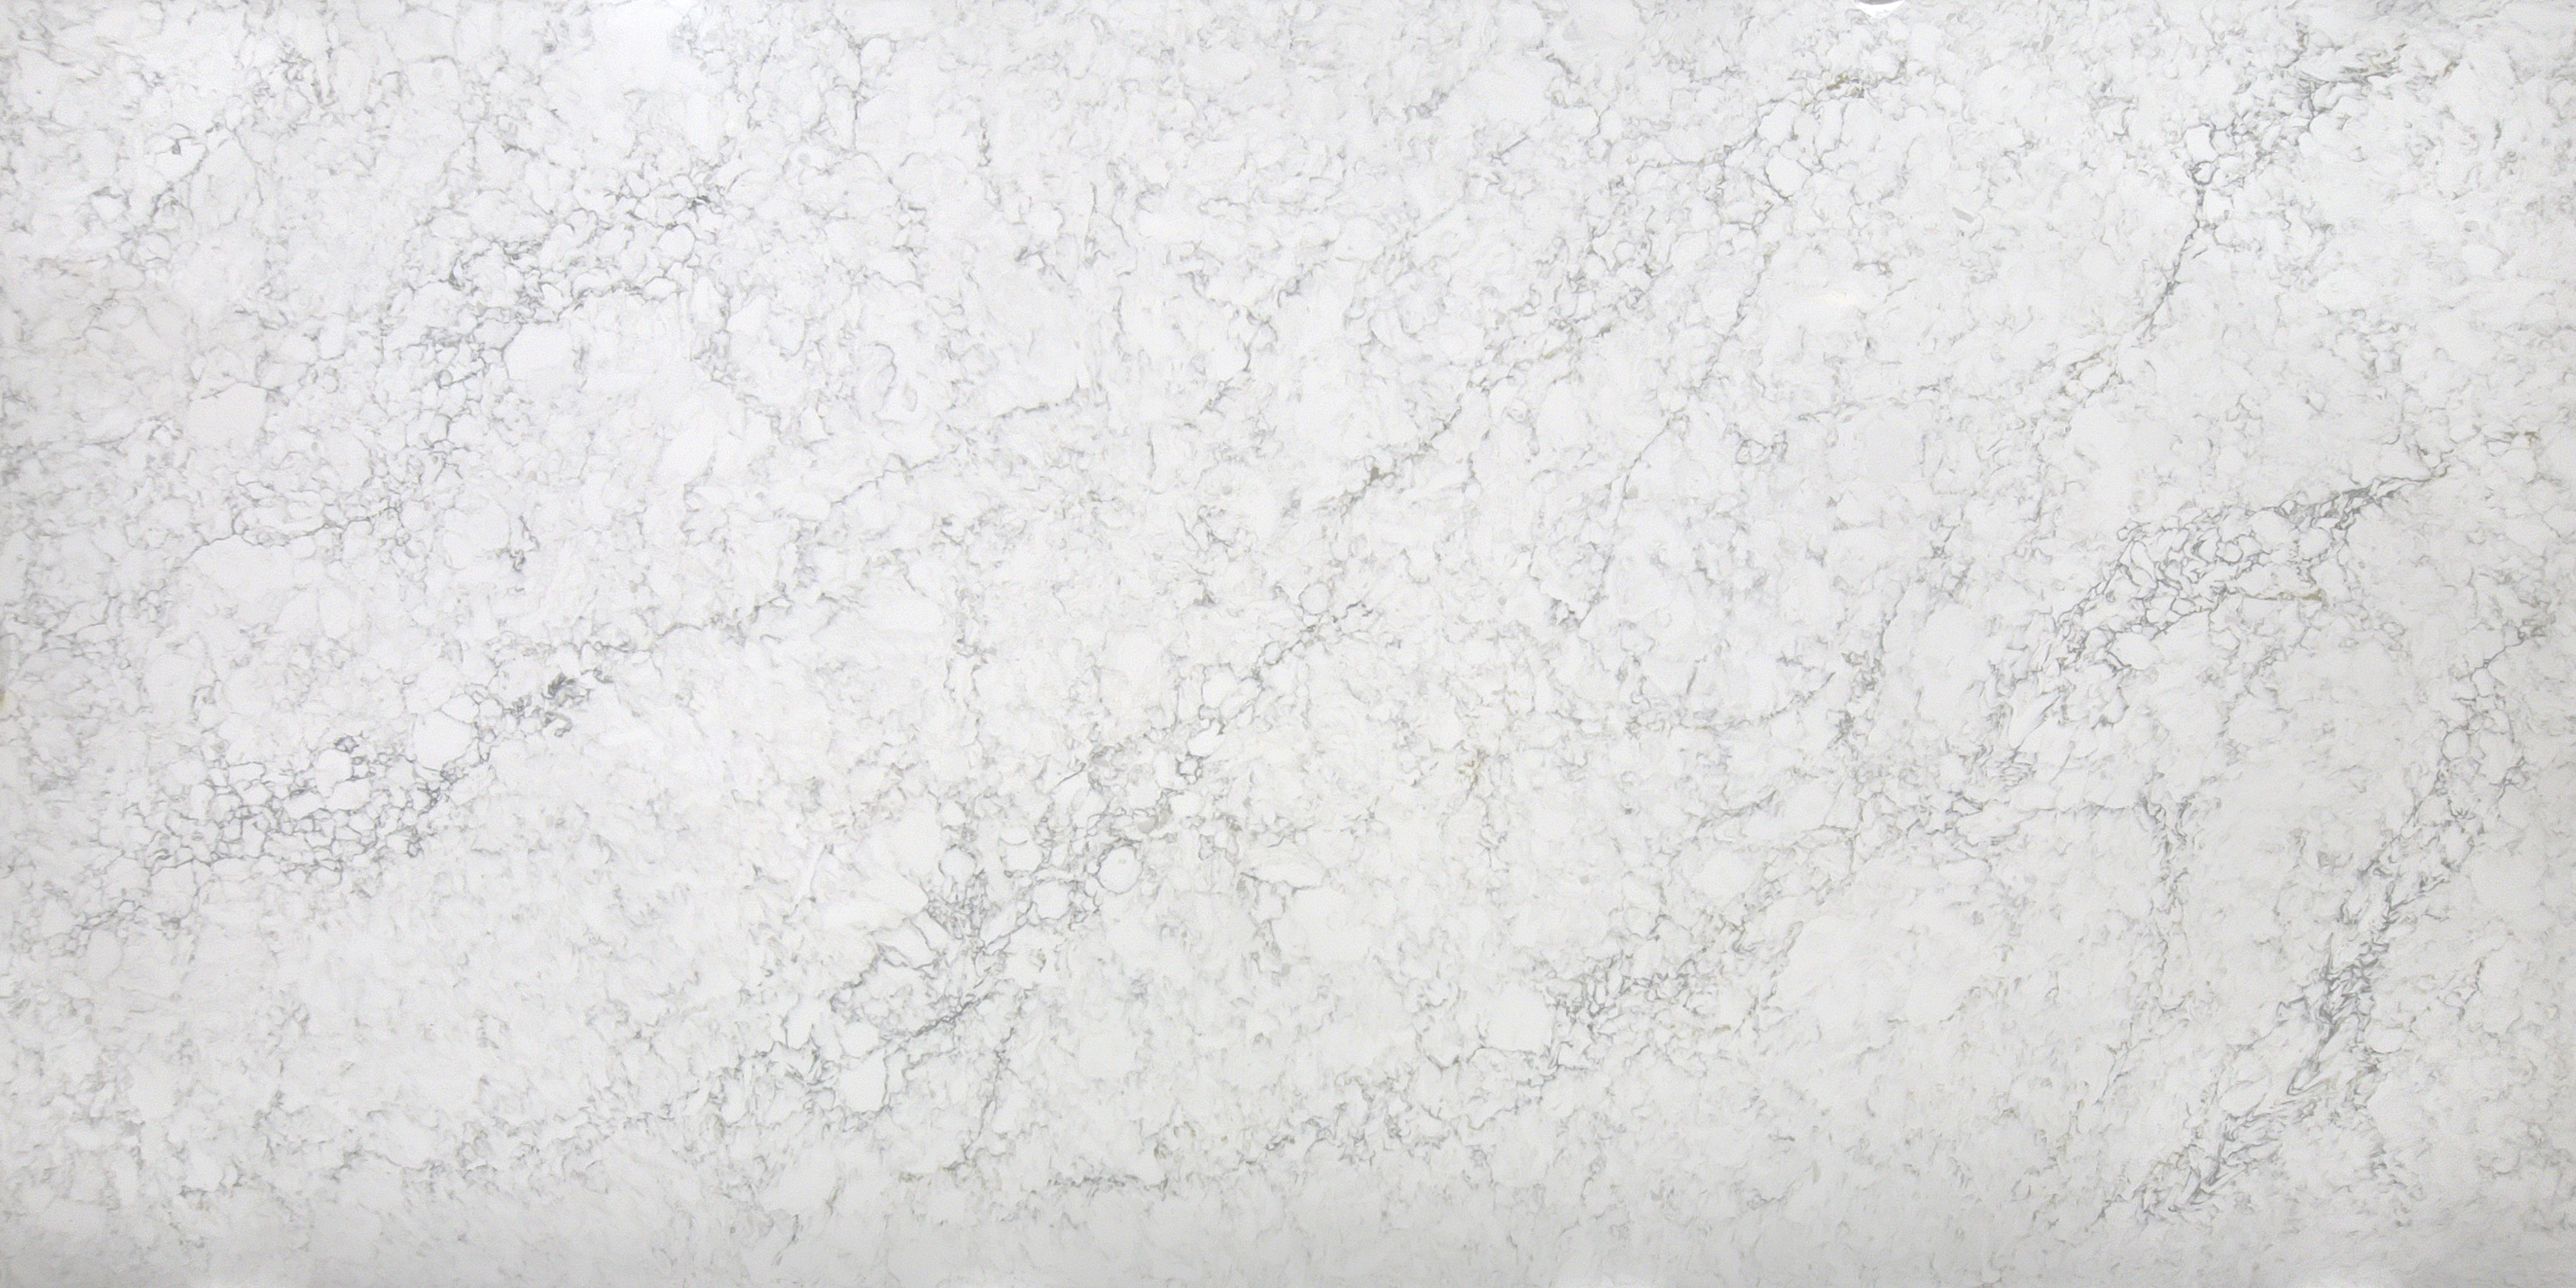 Cool Wallpaper Marble Whatsapp - 55  Pictures_731326.jpg